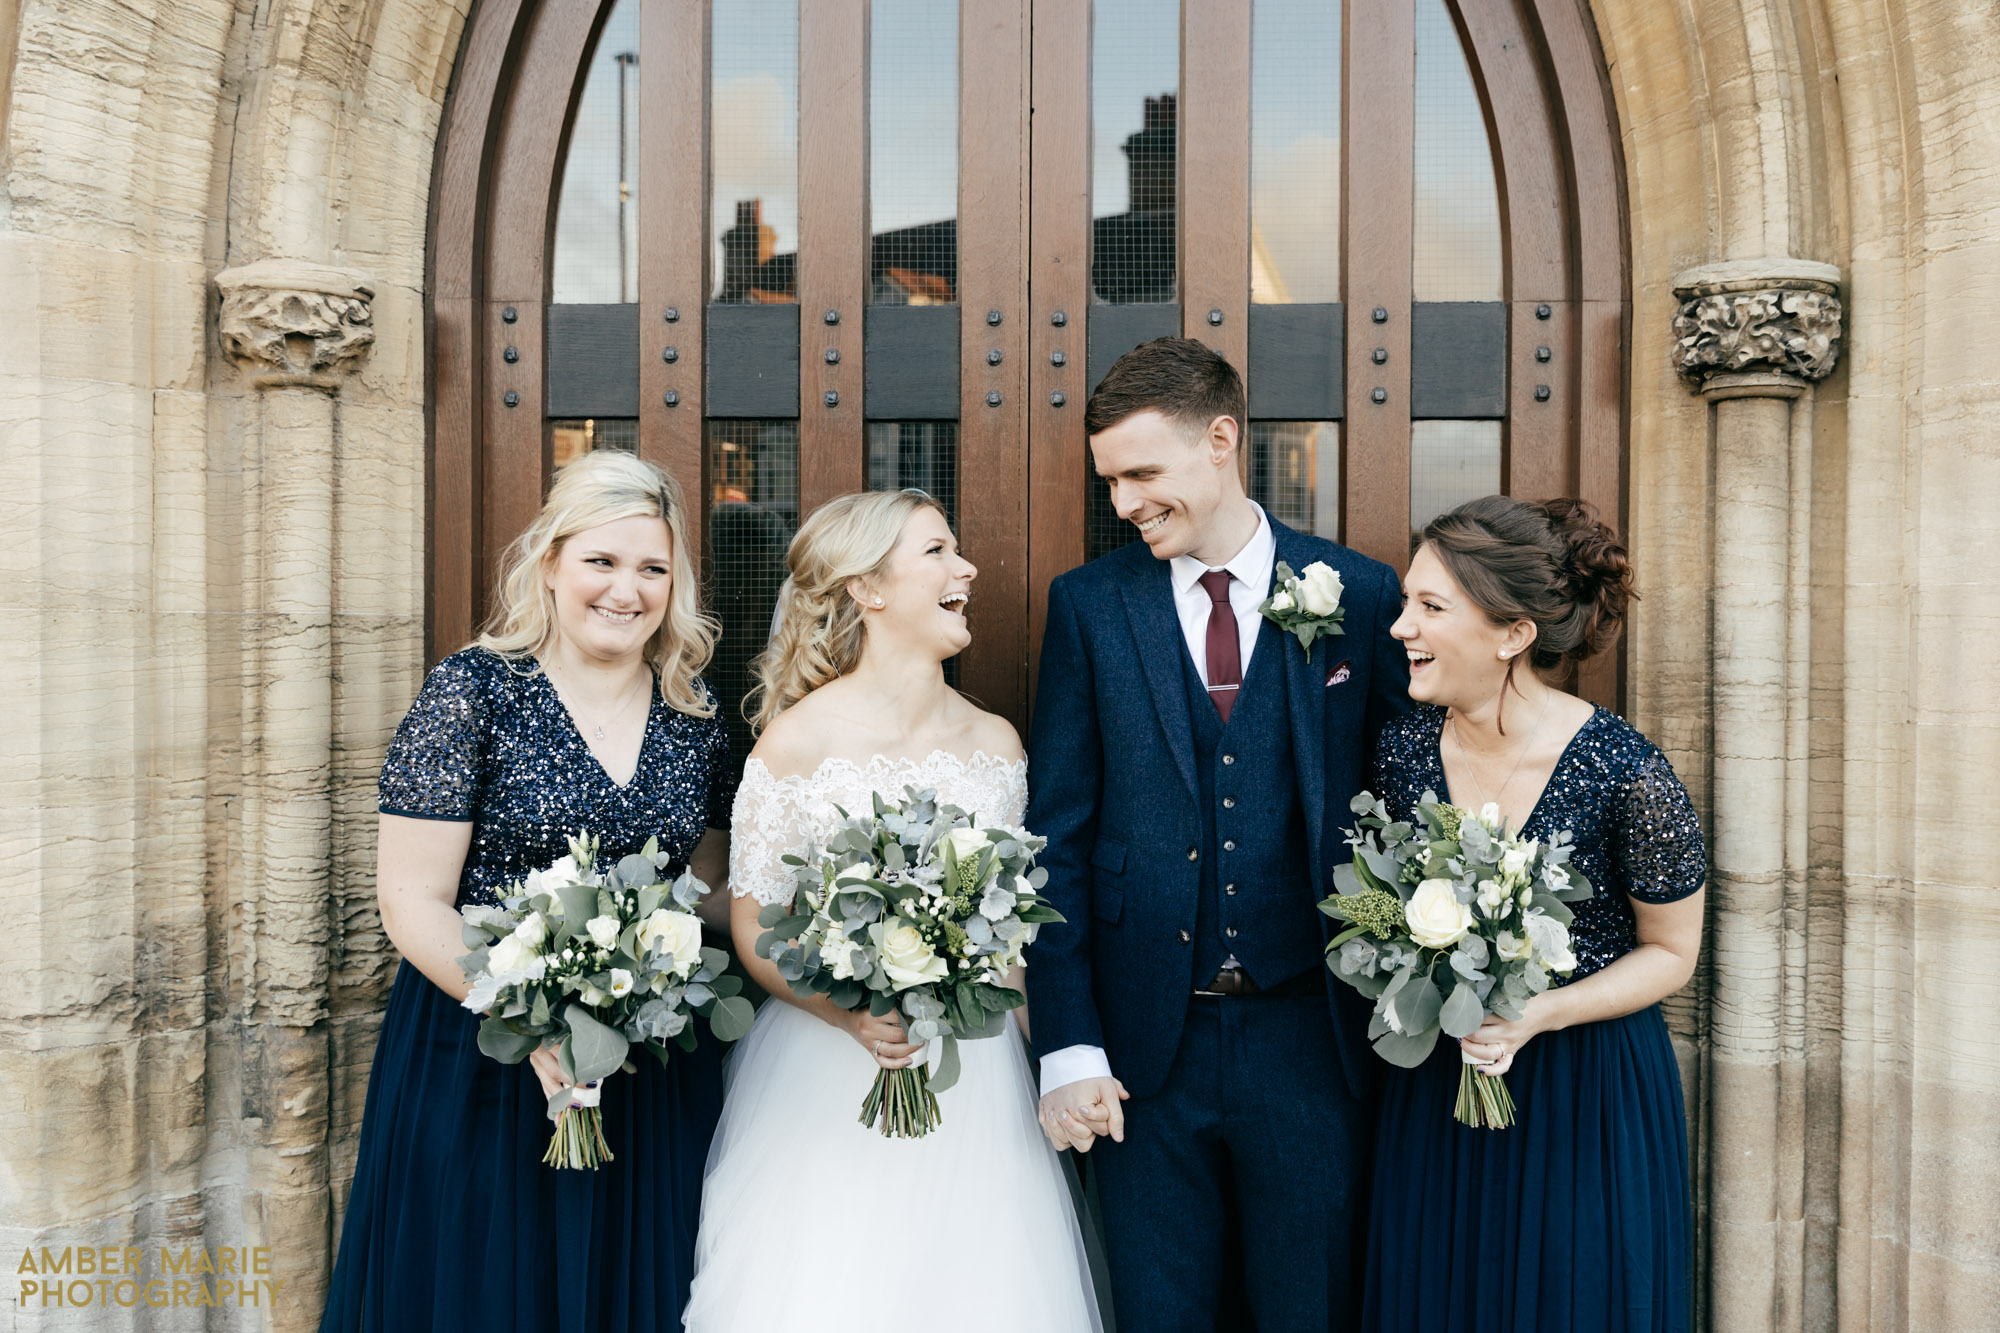 Fun Wedding Photography Gloucestershire